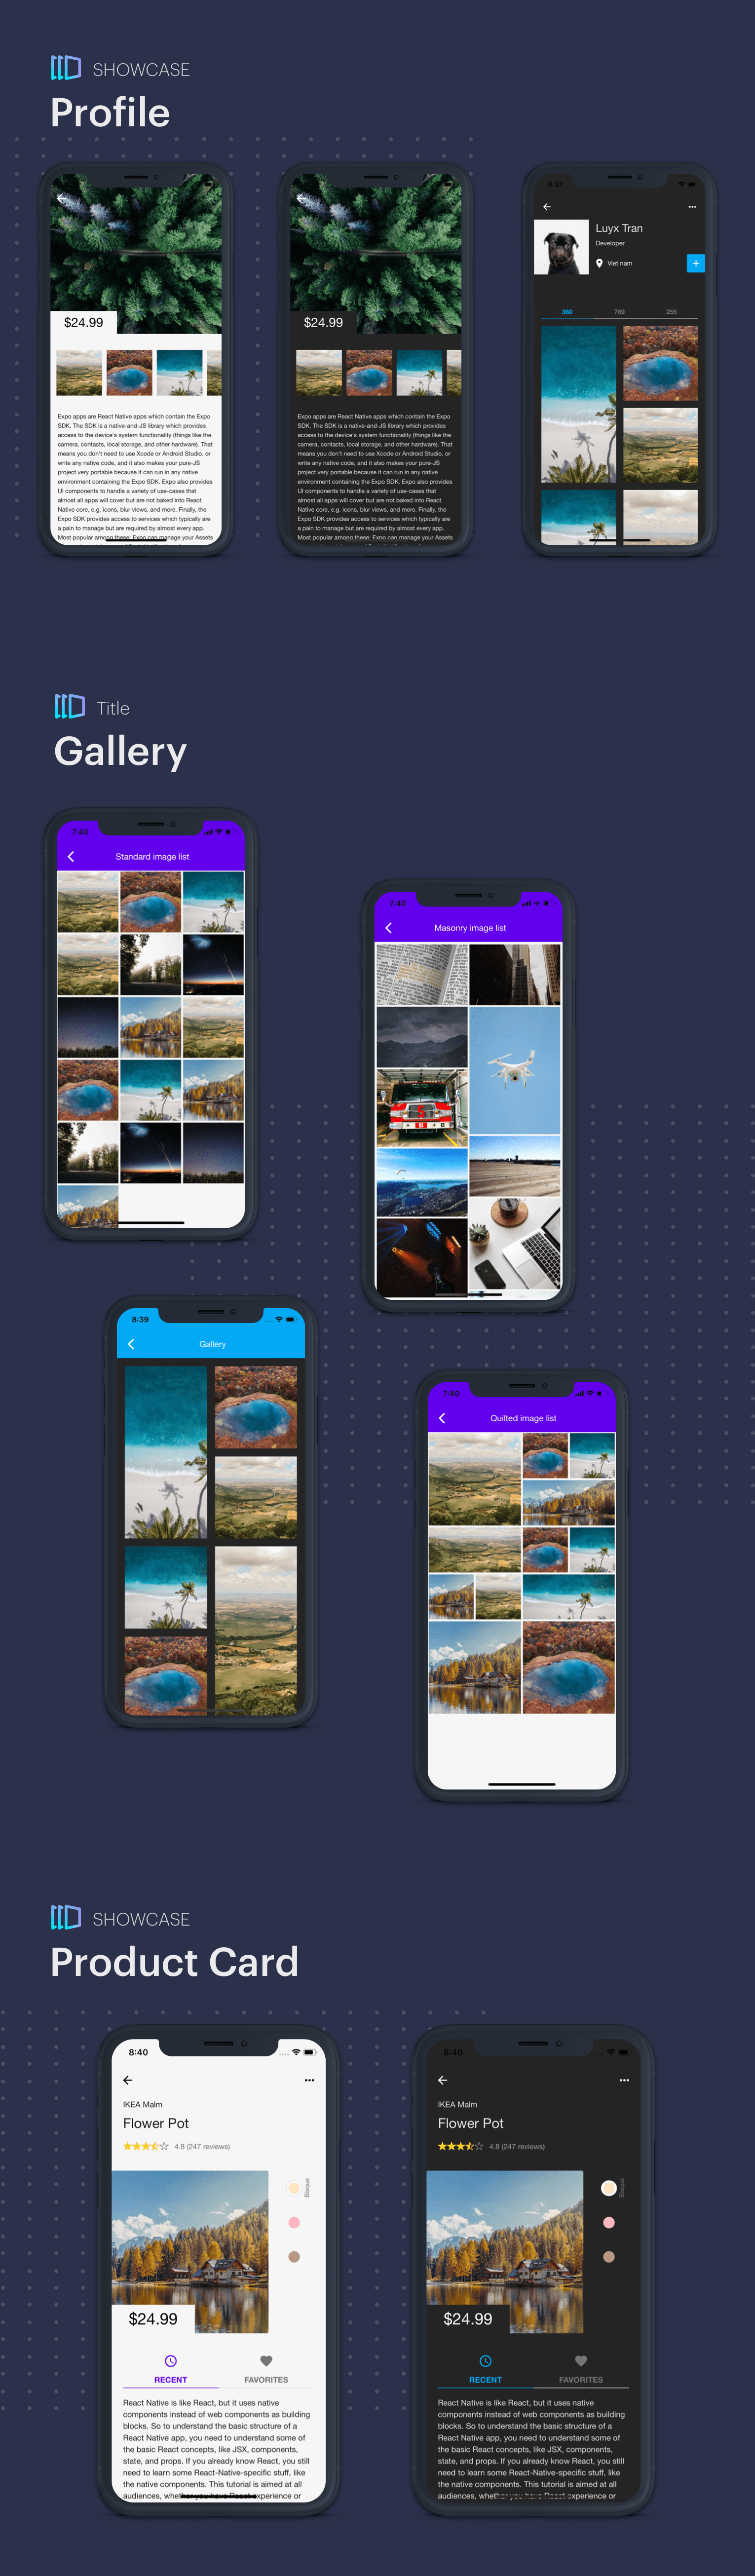 ReactXS - UIKit for Material Design 2.0 by React Native - 5